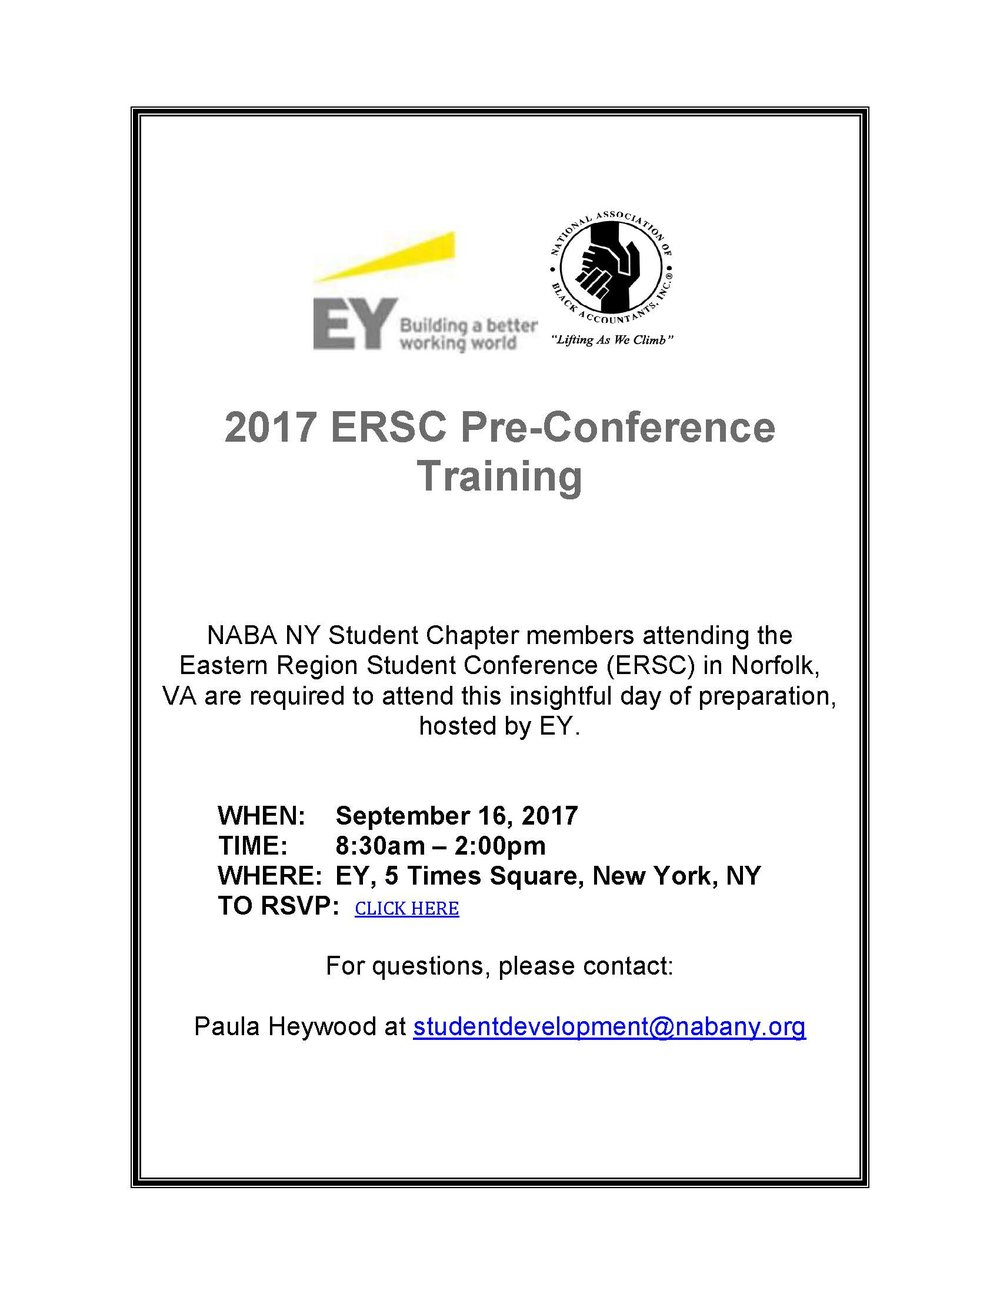 EY 2017 ERSC Pre Conf Training Updated.jpg